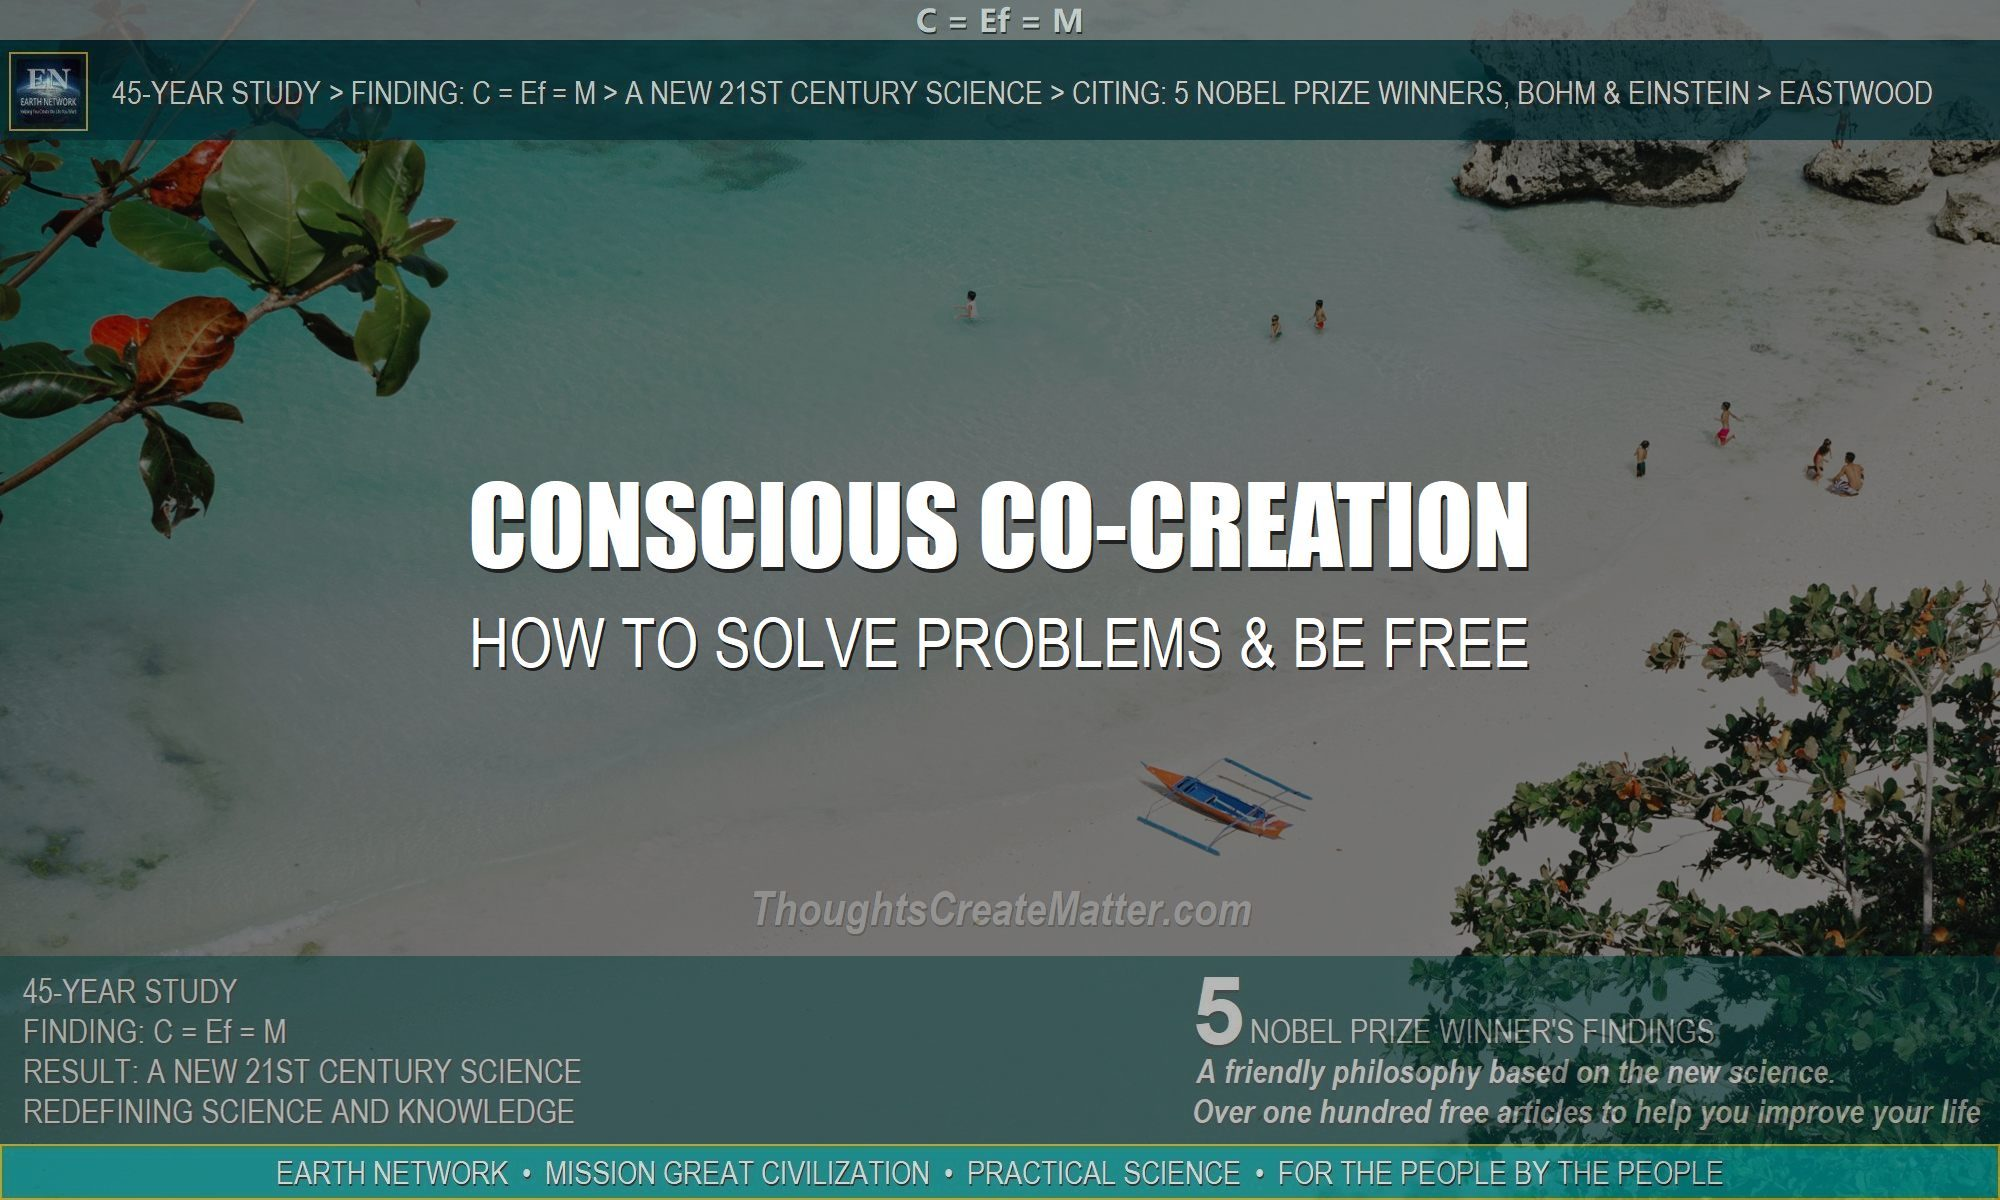 Beach depicts life of freedom after using conscious co-creation to clear the conscious mind of impediments and solve life problems.